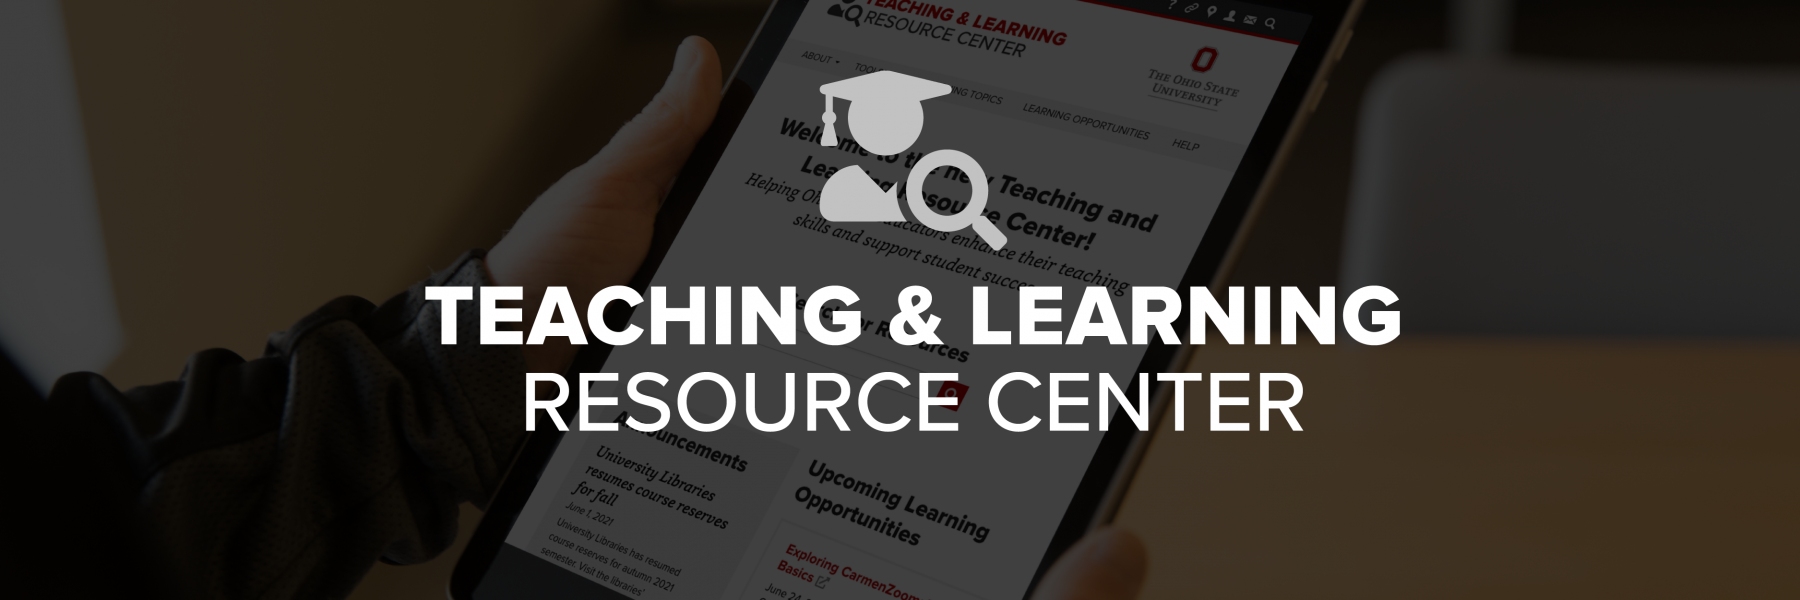 Teaching and Learning Resource Center